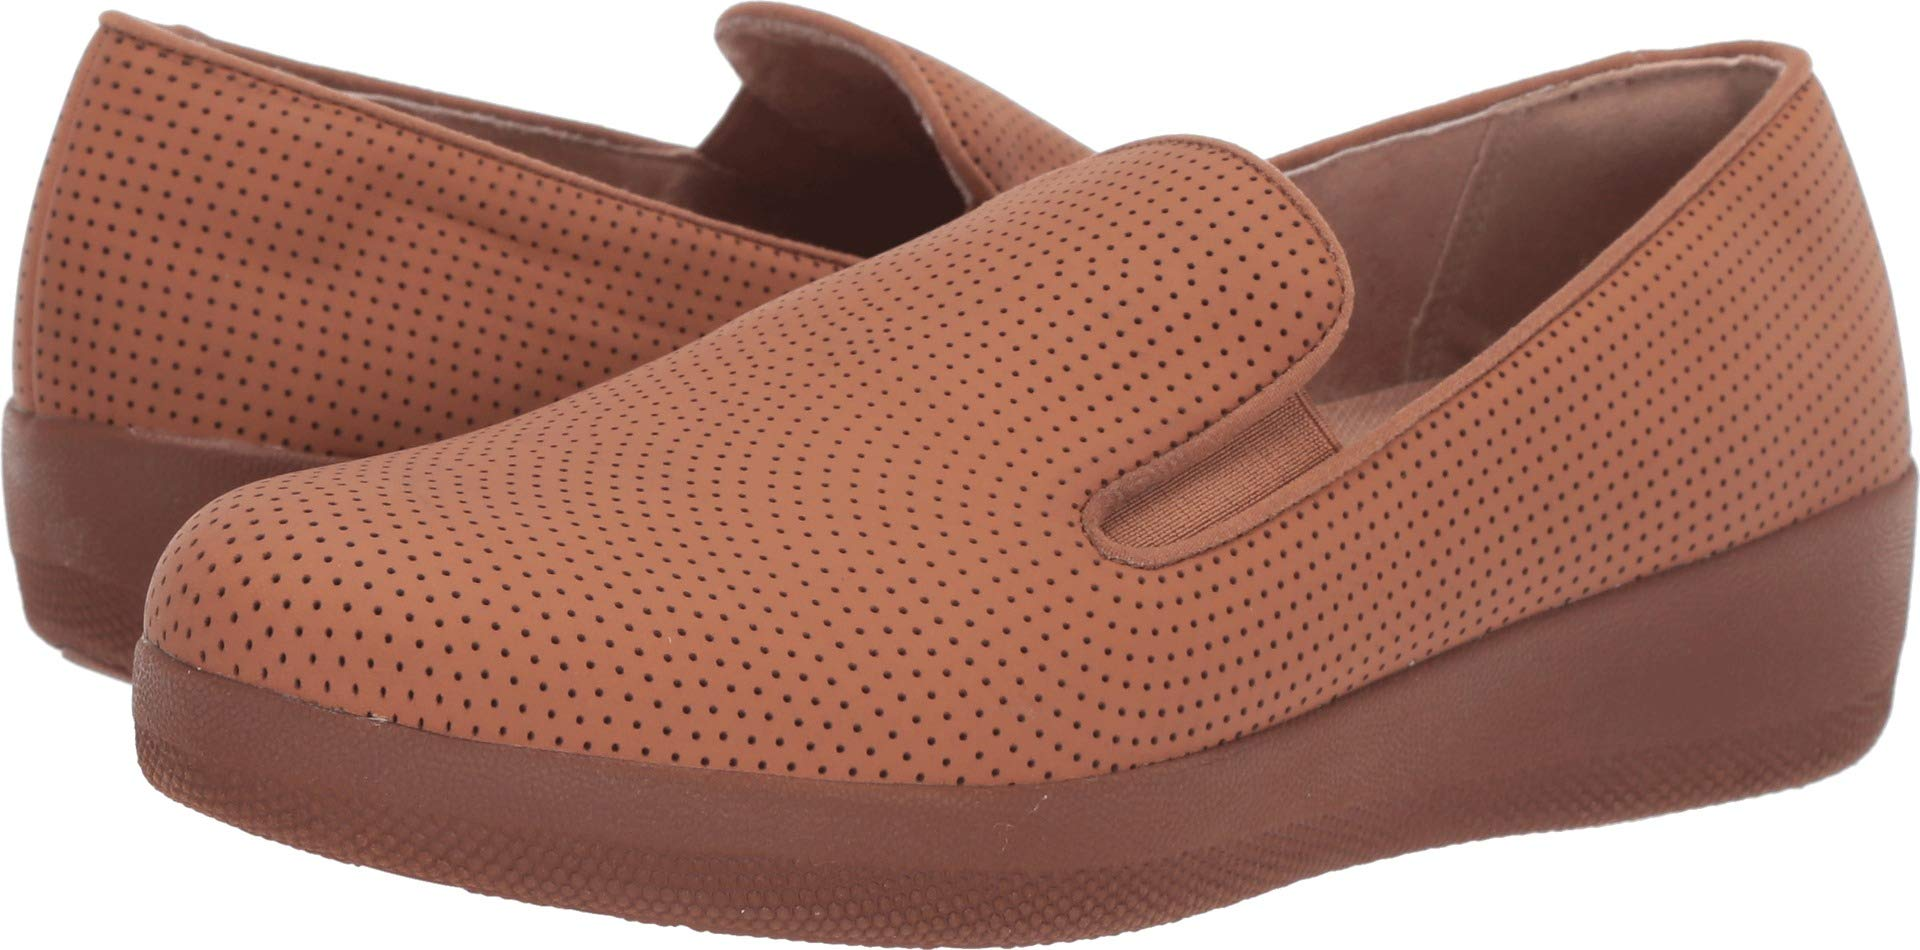 FITFLOP Women's Superskate Perforated Skate Shoe Light Tan 9 M US by FITFLOP